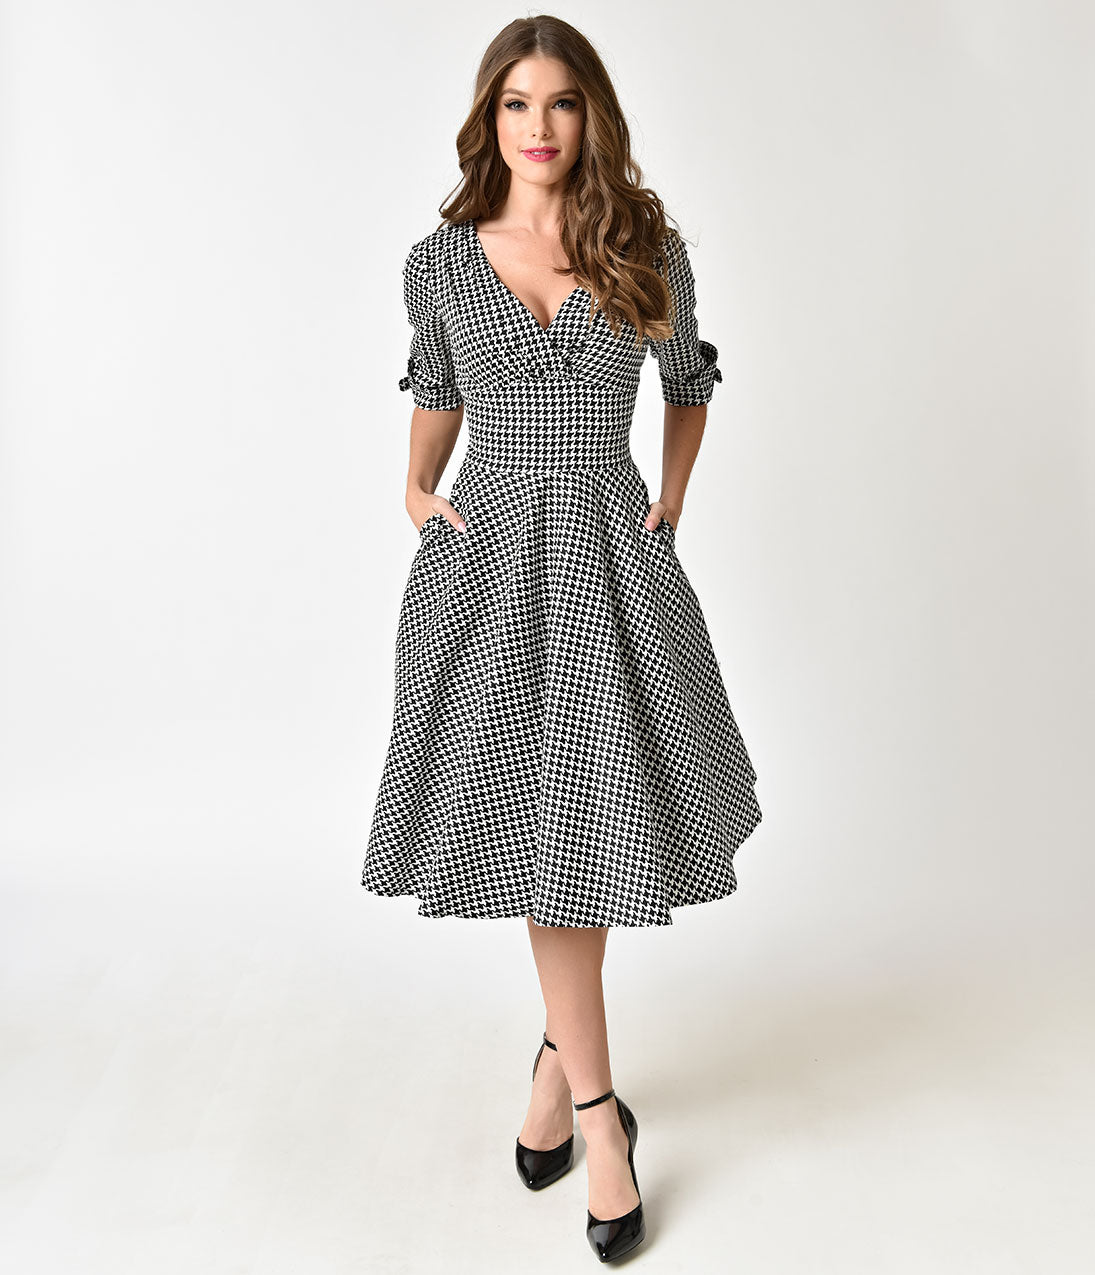 1950s Swing Dresses | 50s Swing Dress Unique Vintage 1950S Black  White Houndstooth Delores Swing Dress With Sleeves $98.00 AT vintagedancer.com